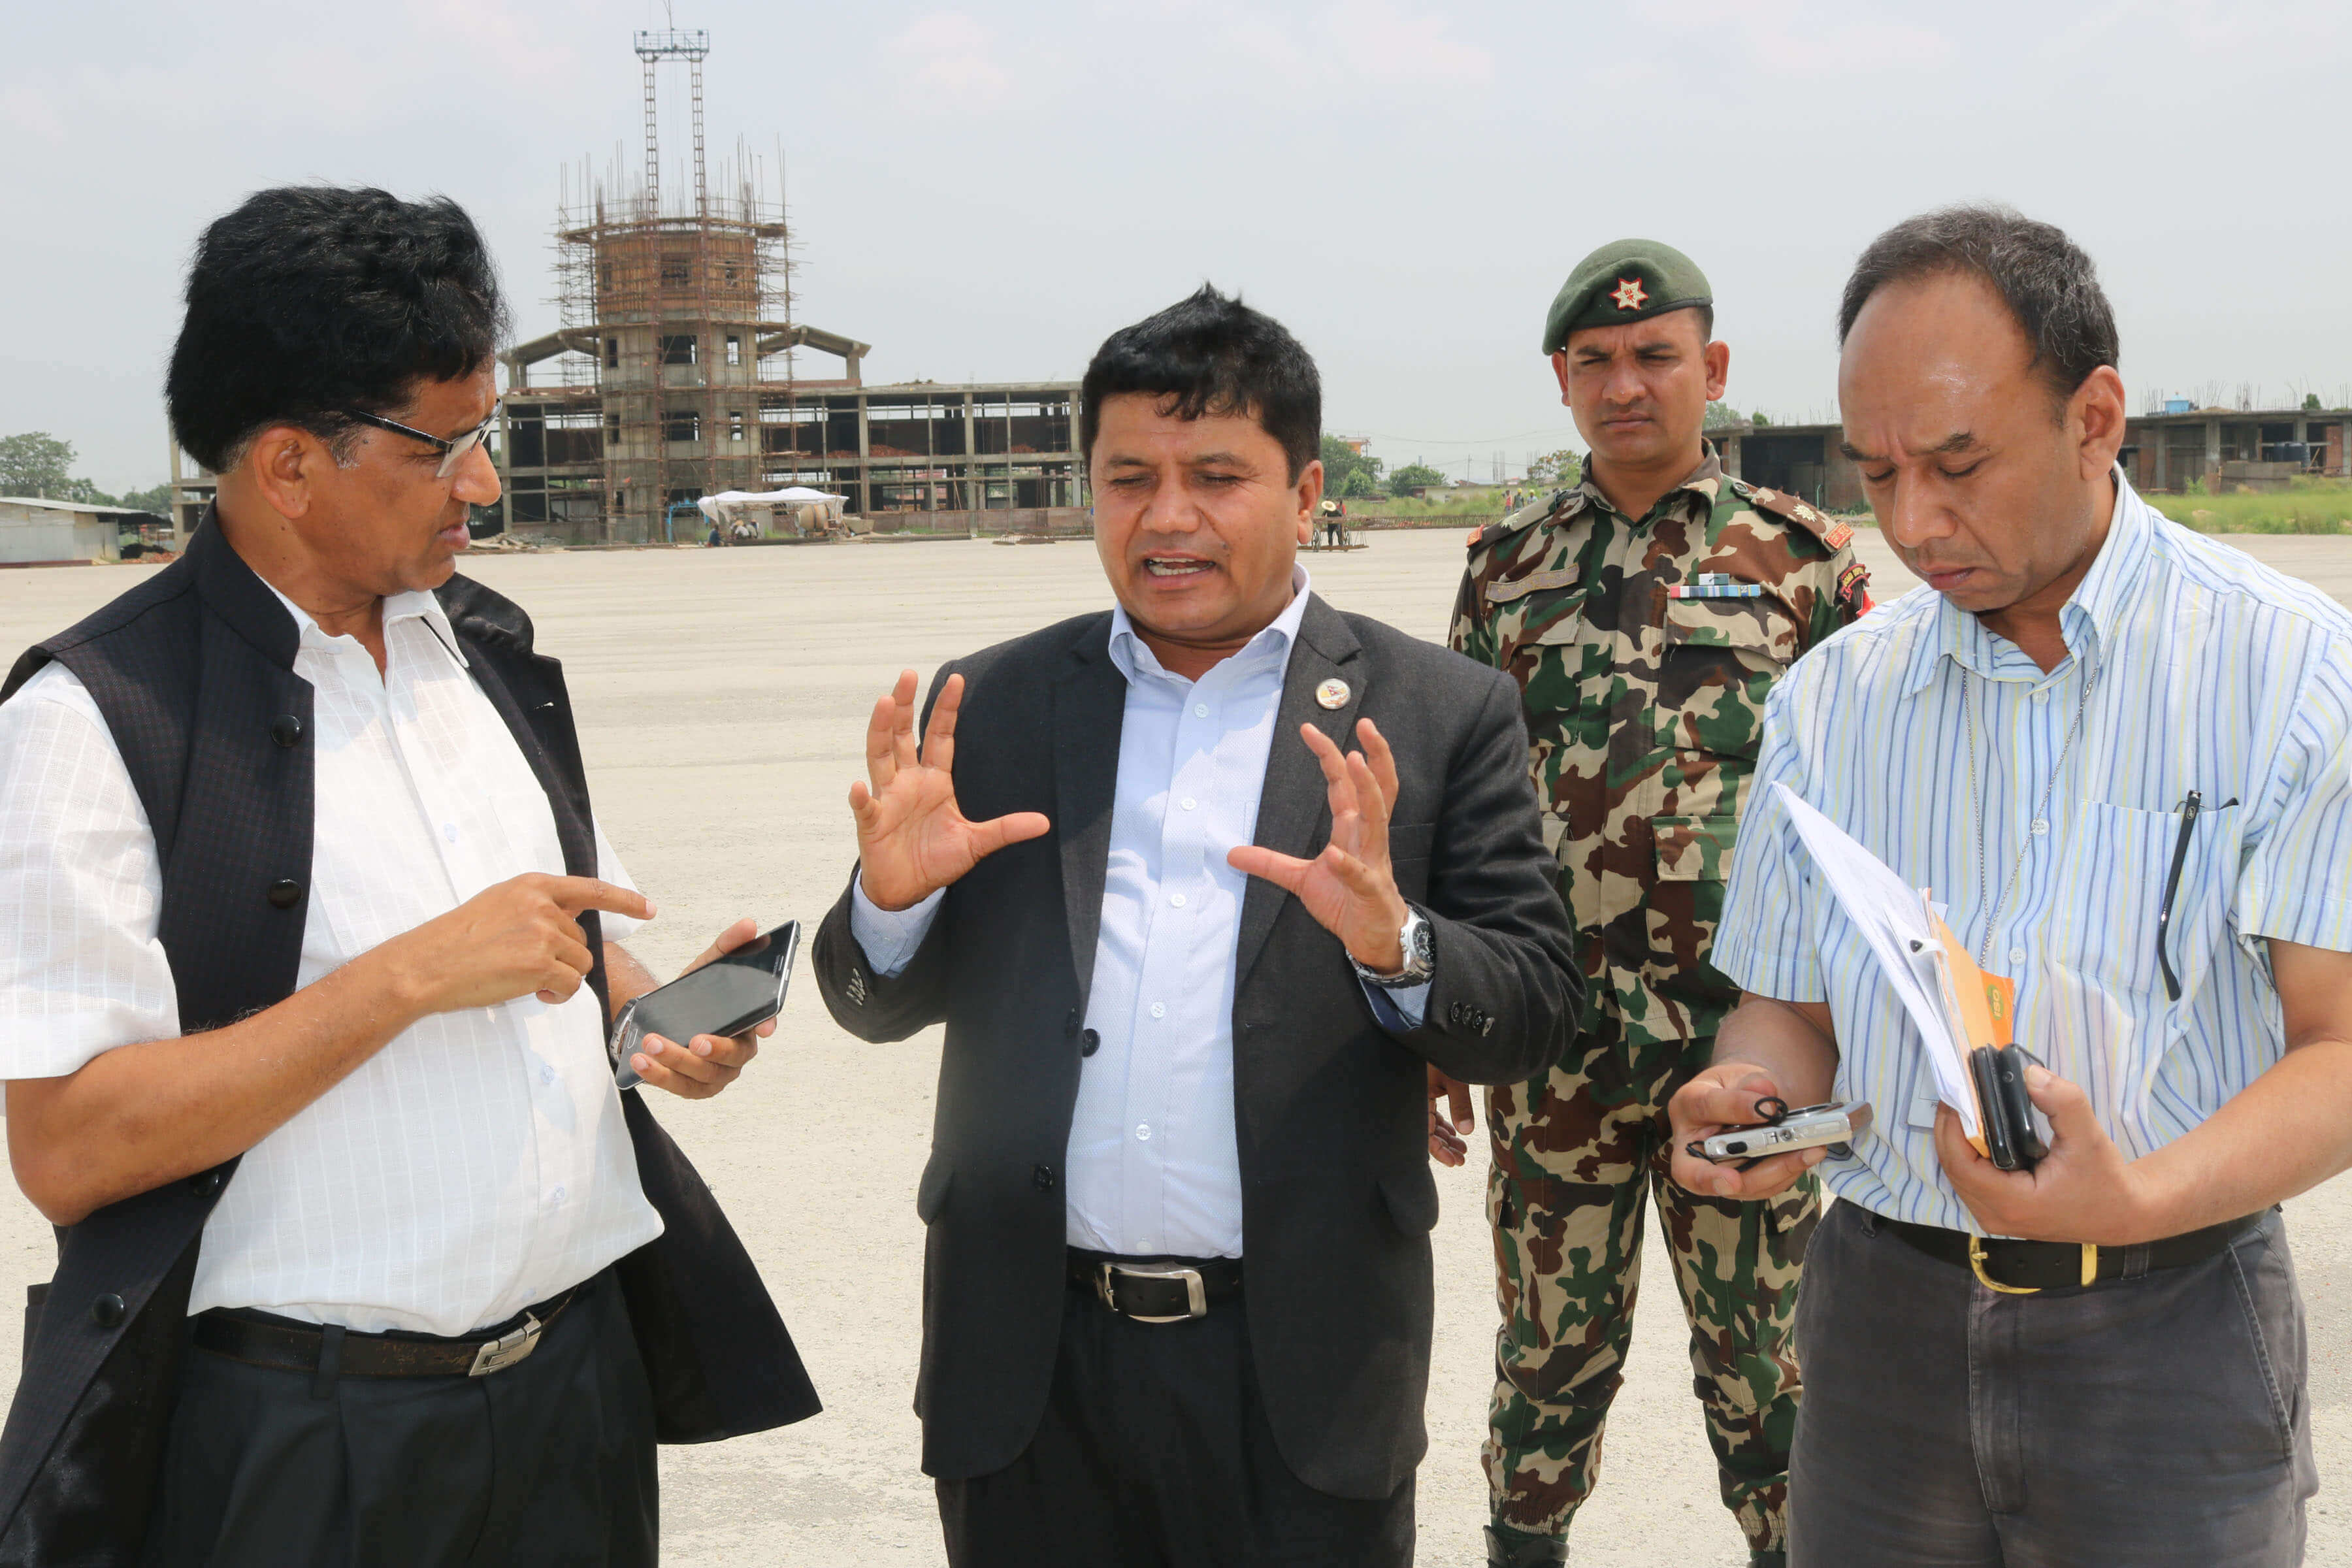 Minister for Culture, Tourism and Civil Aviation Rabindra Adhikari inspects Gautam Buddha International Airport in Lumbini on Wednesday. The airport is currently under-construction and is expected to be completed by next year.